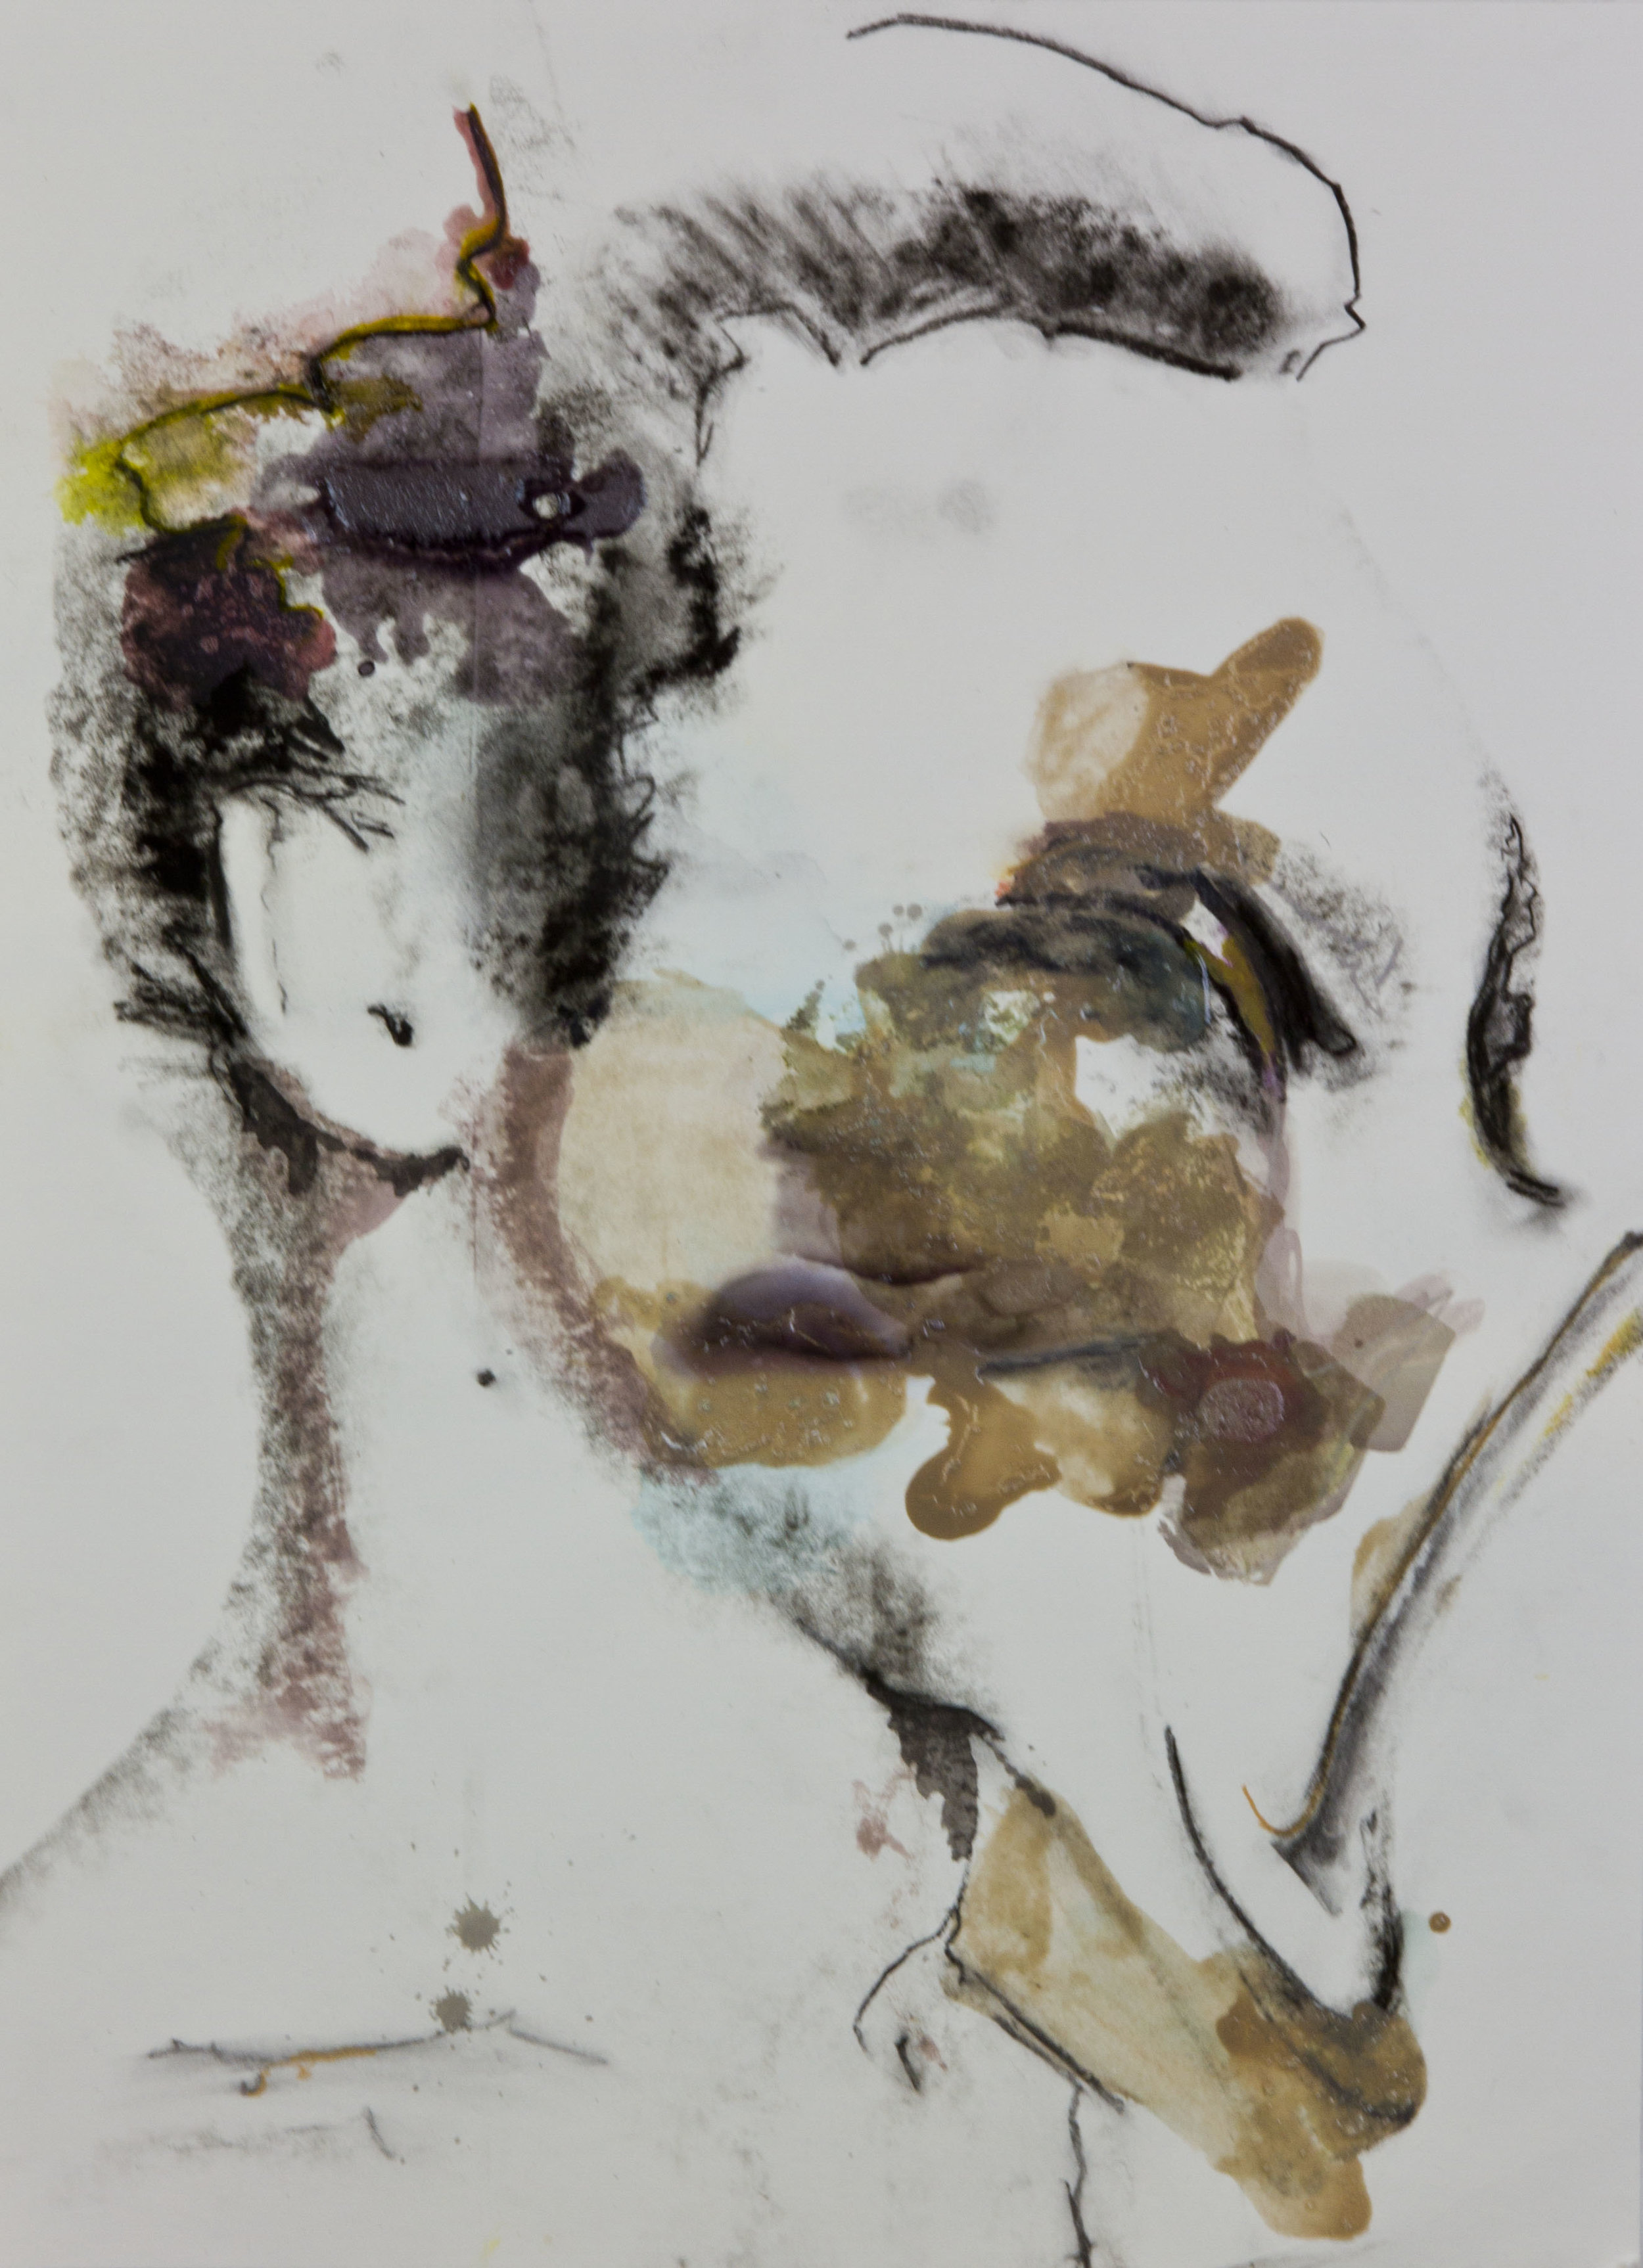 Mudslide Face, 2012, watercolor, acrylic and ink transfer on paper, 22x30 inches